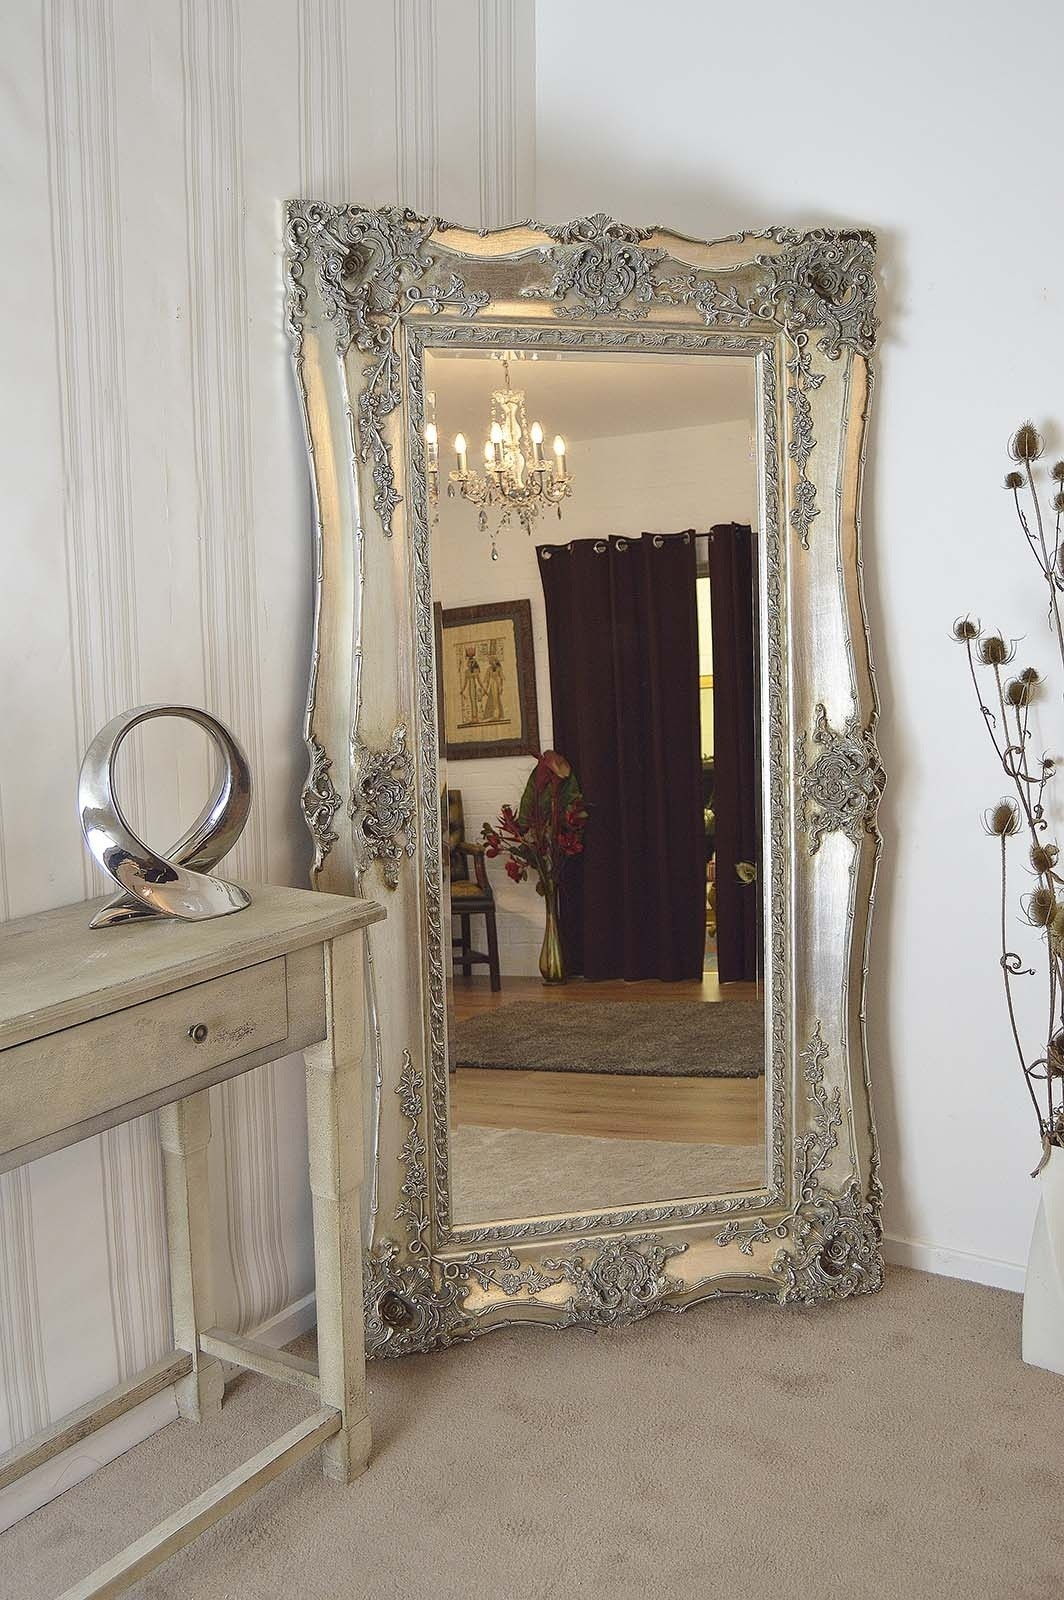 Extra Large Mirrors 10 Tips For Choosing Inovodecor For Large Ornate Mirrors For Sale (View 4 of 15)